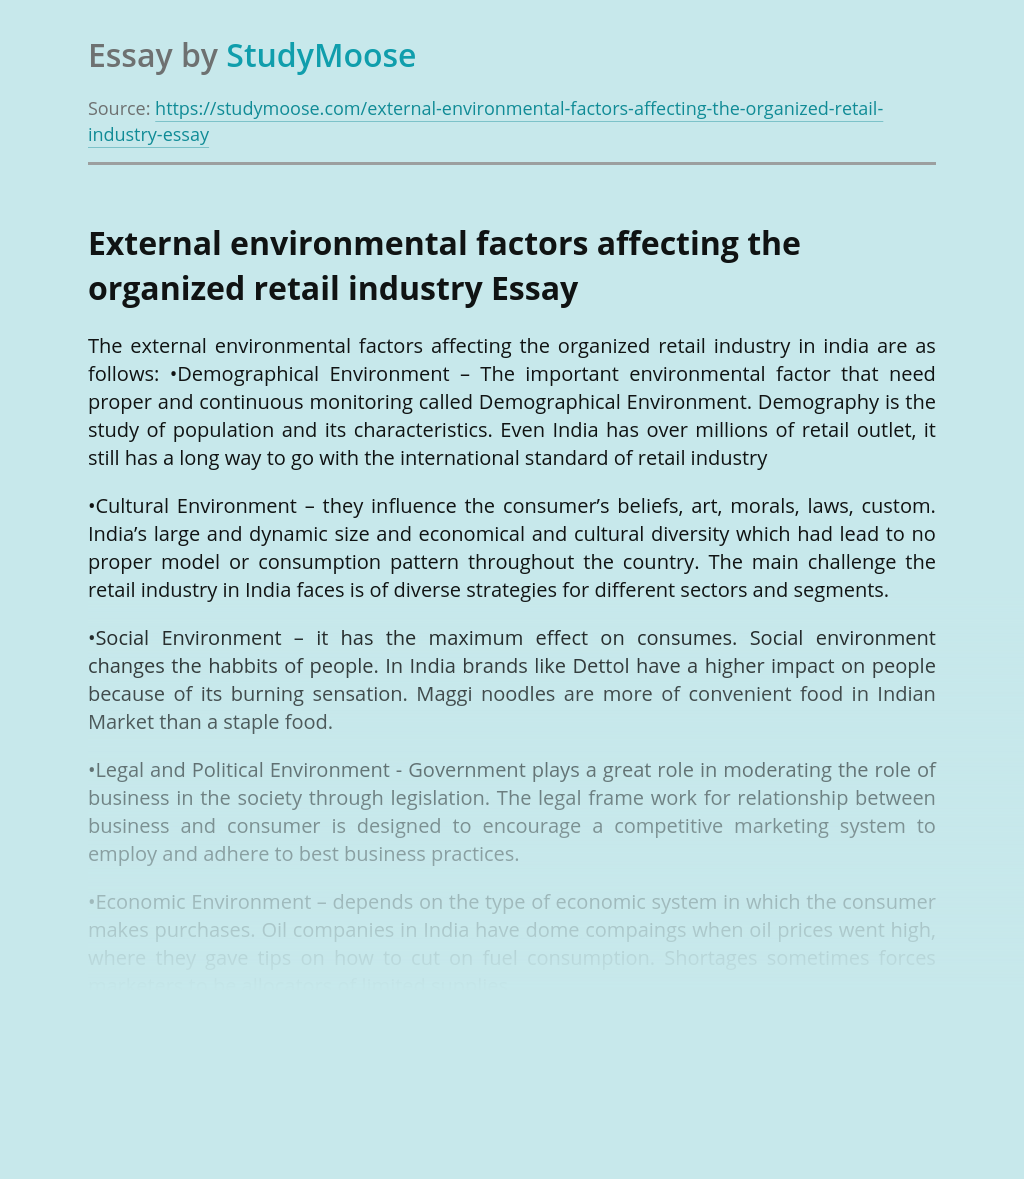 External environmental factors affecting the organized retail industry